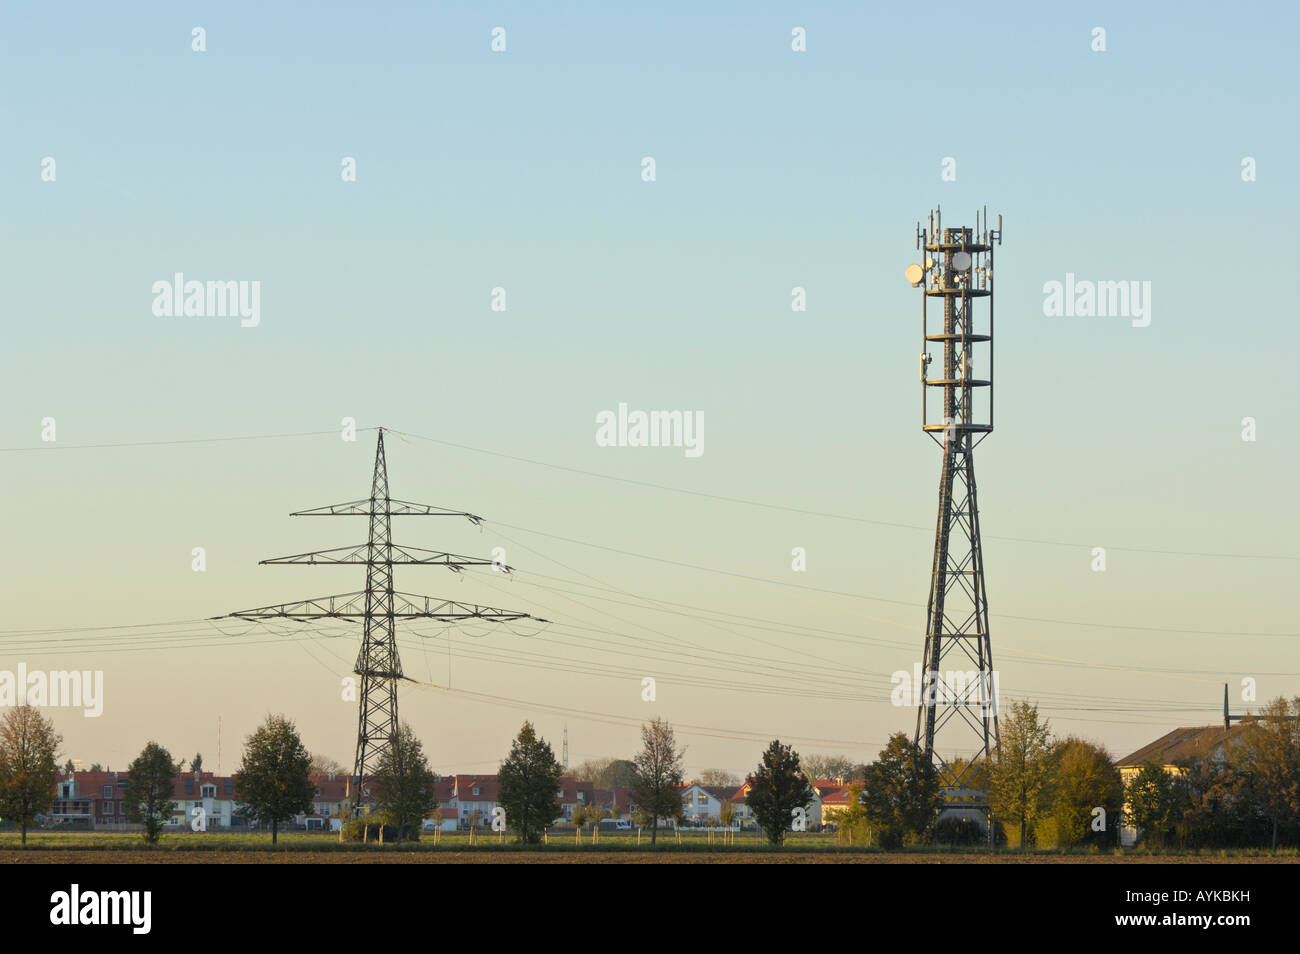 Electric smog A radio tower and a high voltage power line near a village in Bavaria, Germany - Stock Image